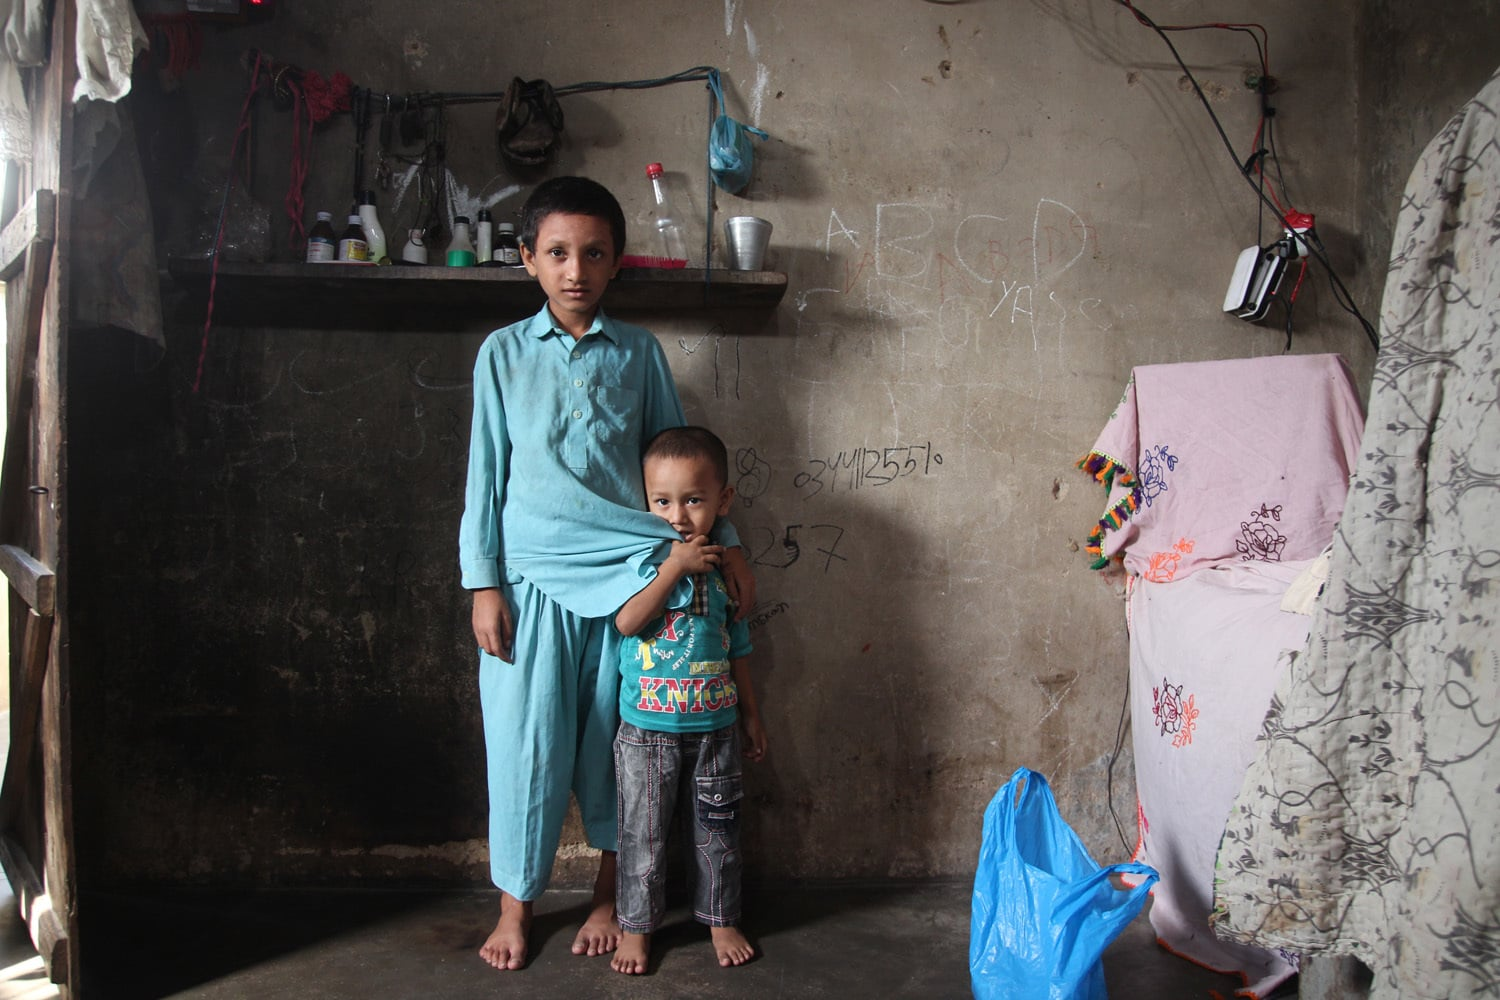 Yaseen, who studies at TCF, poses with his younger brother.